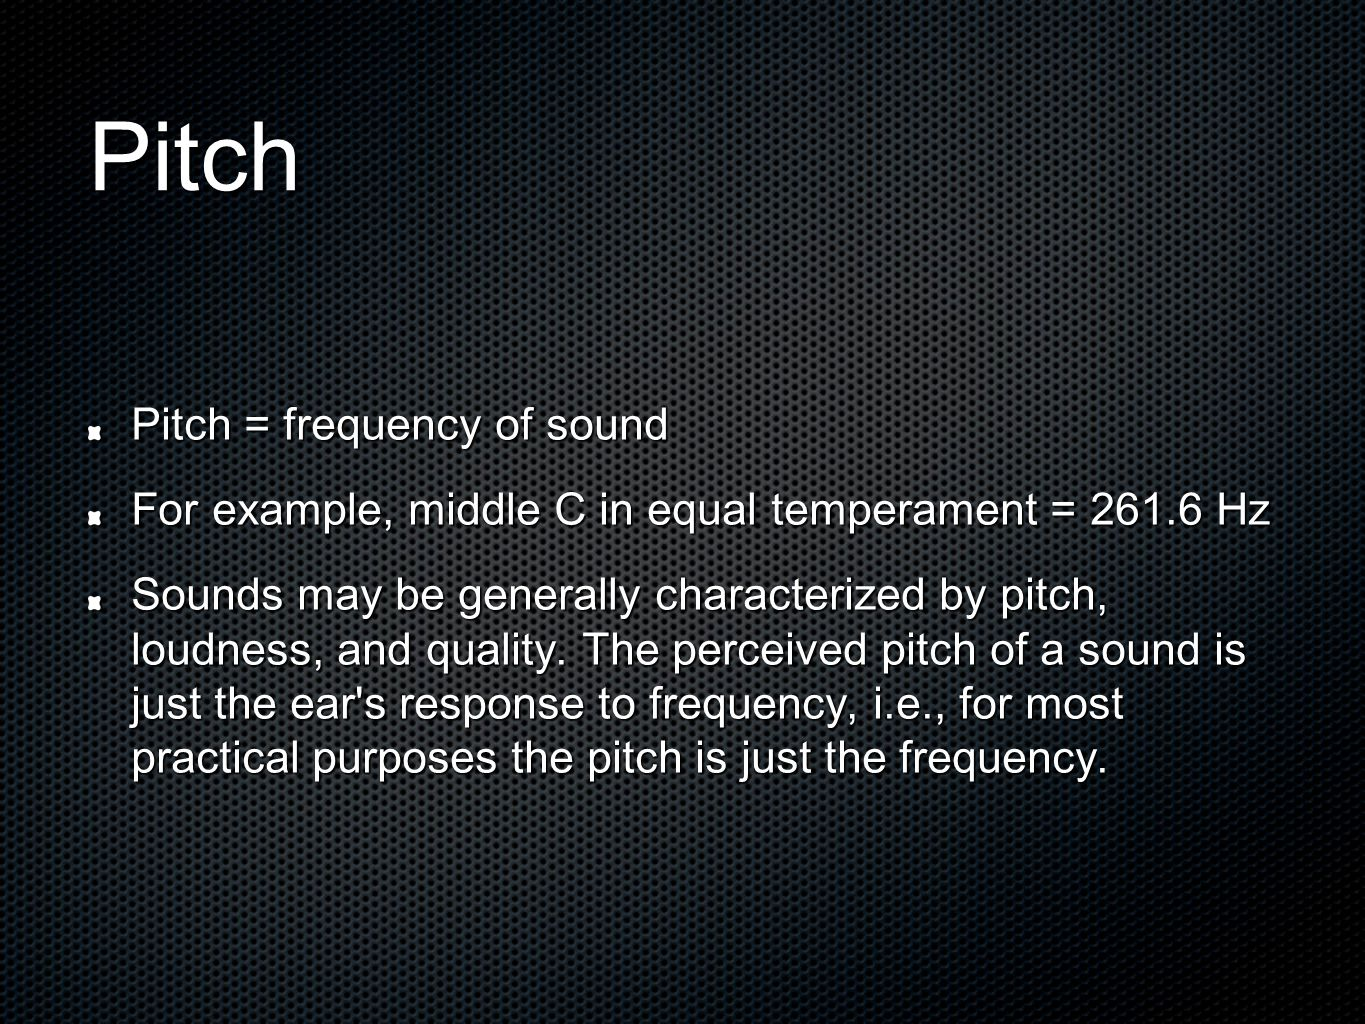 Pitch Pitch = frequency of sound For example, middle C in equal temperament = 261.6 Hz Sounds may be generally characterized by pitch, loudness, and quality.